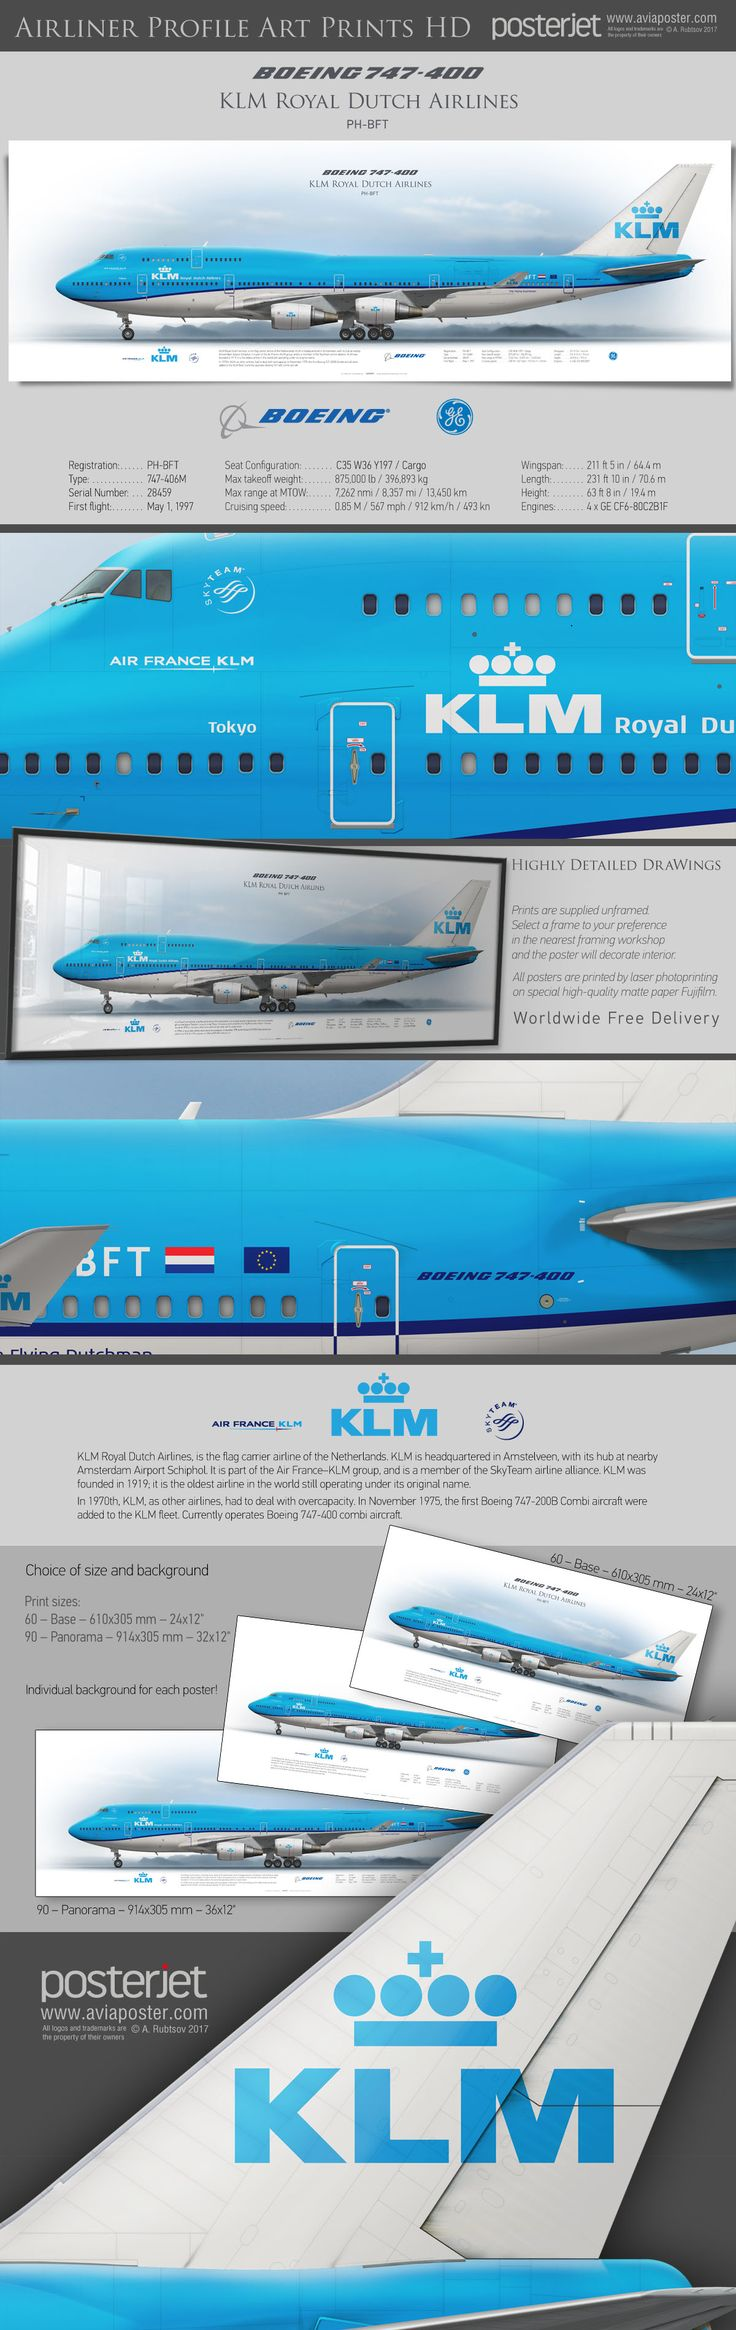 Boeing 747-400 KLM Royal Dutch Airlines PH-BFT  | www.aviaposter.com | #airliners #aviation #jetliner #airplane #pilot #aviationlovers #avgeek #jet #airport #pilotlife #cabincrew #boeing #b747 #jumbojet #boeing747 #boeinglovers #boeingpilot #boeingscrew